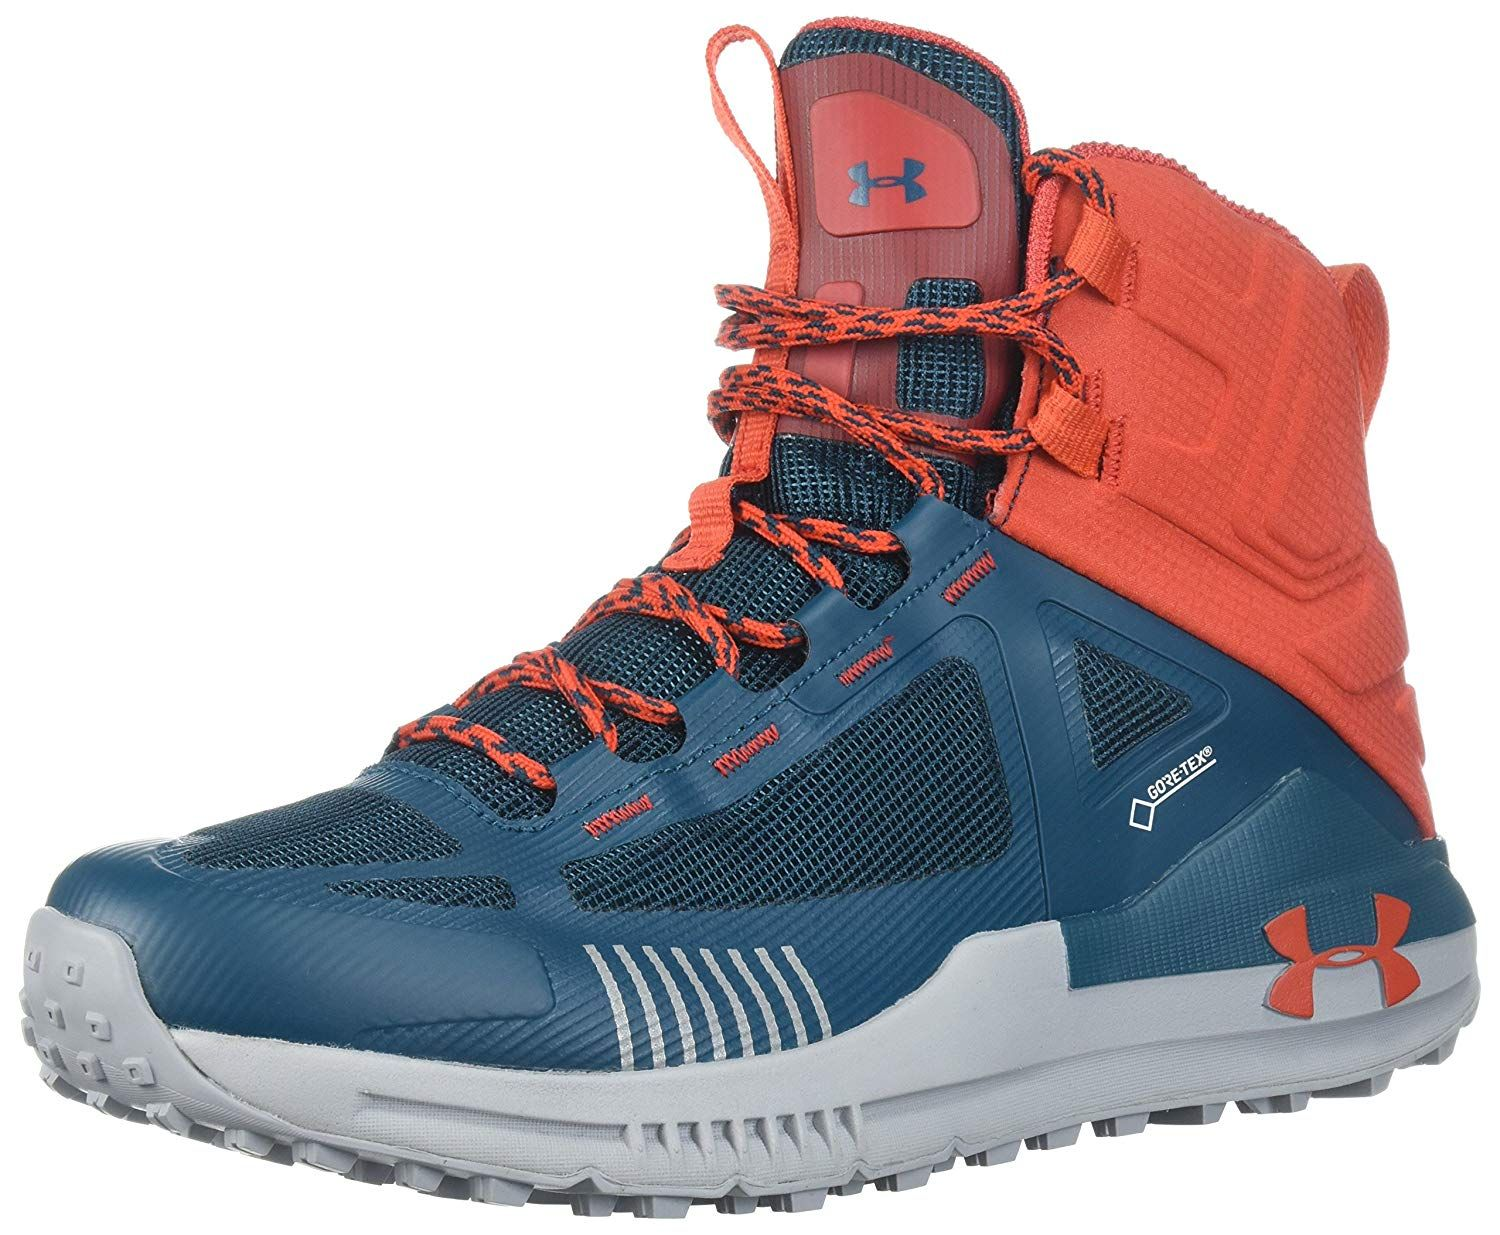 Under Armour Mens Verge 2.0 Mid Gore-tex Hiking Boot